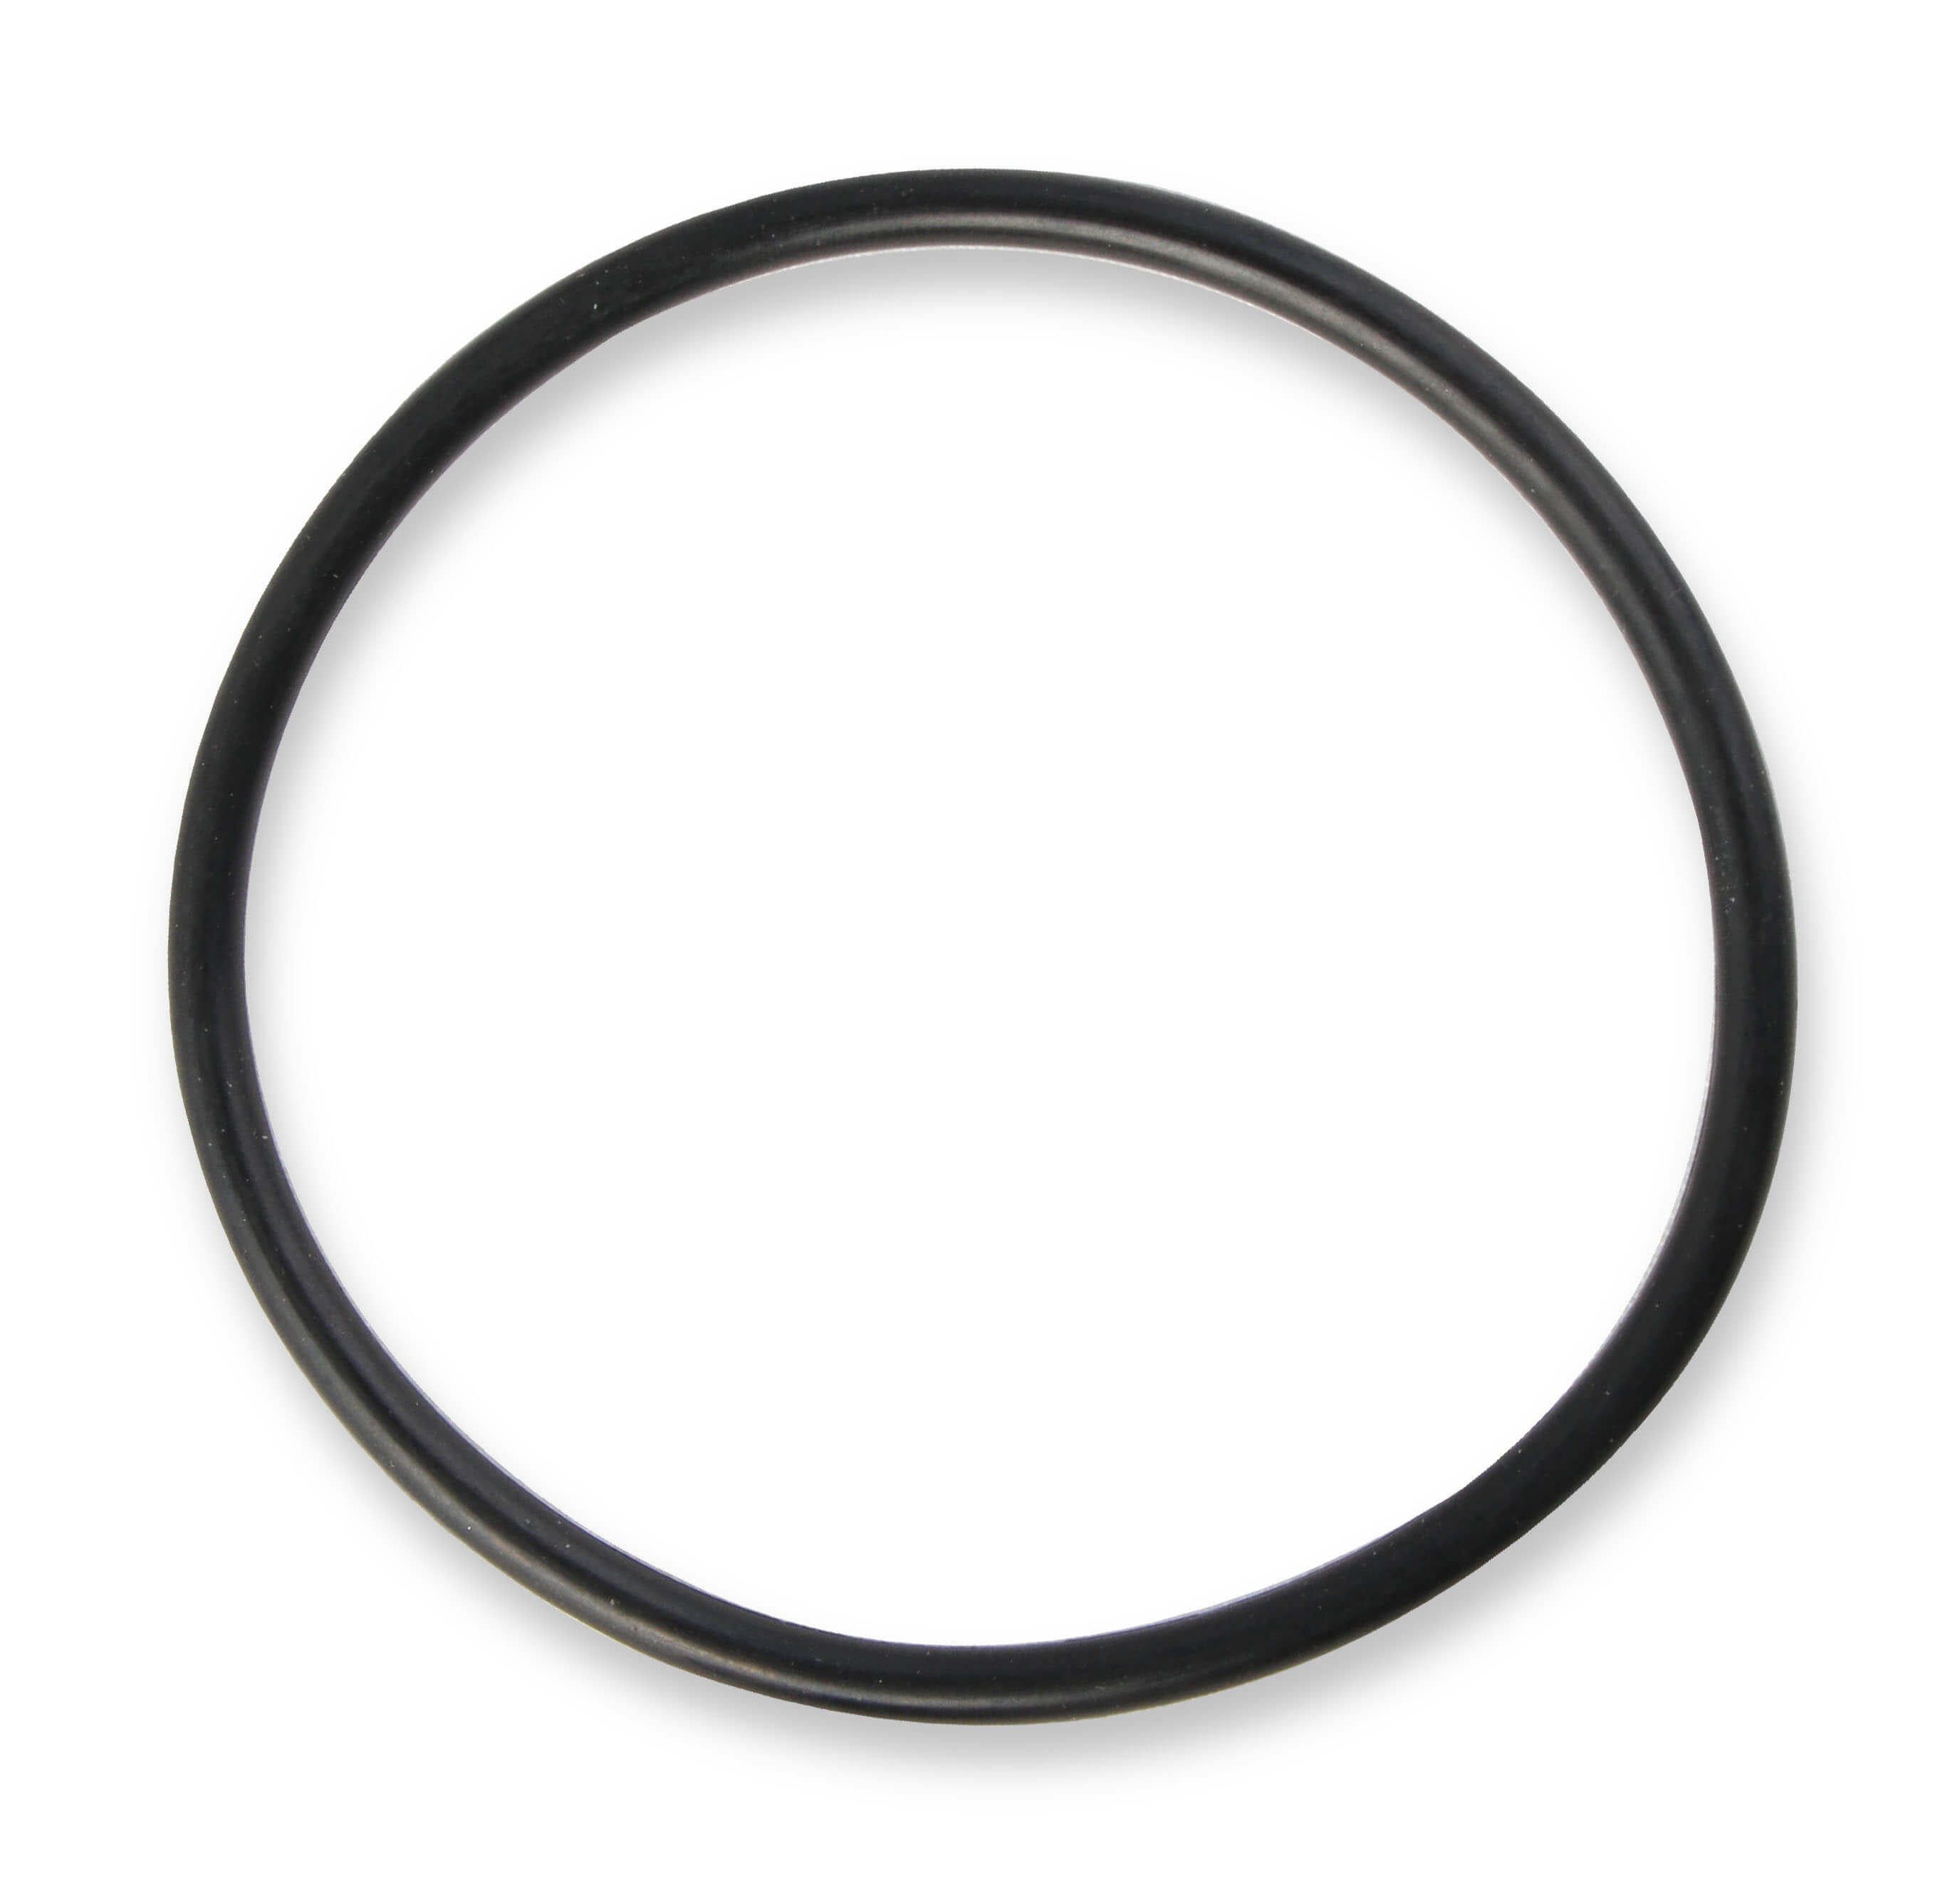 Earls 176510ERL O-Ring, 2.750 in OD, Rubber, Earl's Oil Filter Adapter, Each